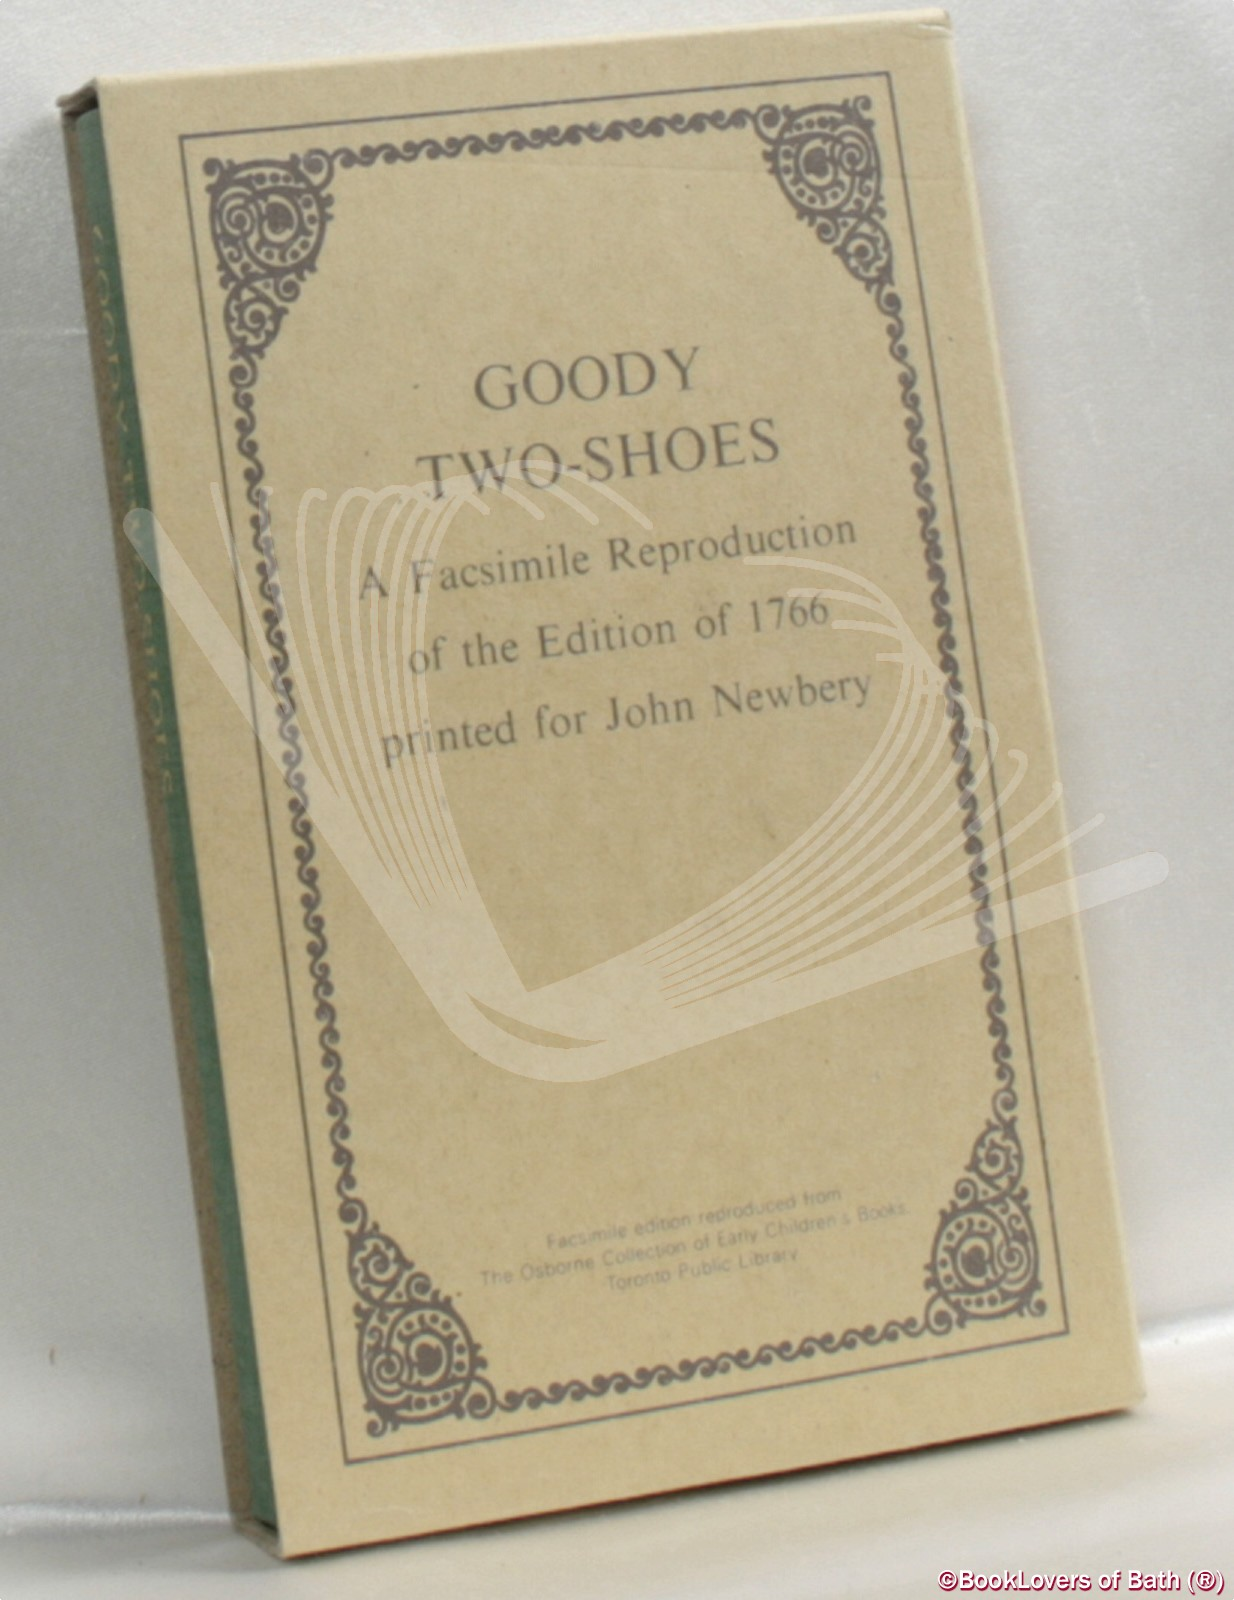 Goody Two-Shoes: A Facsimile Reproduction of the Edition of 1766 - Anon.